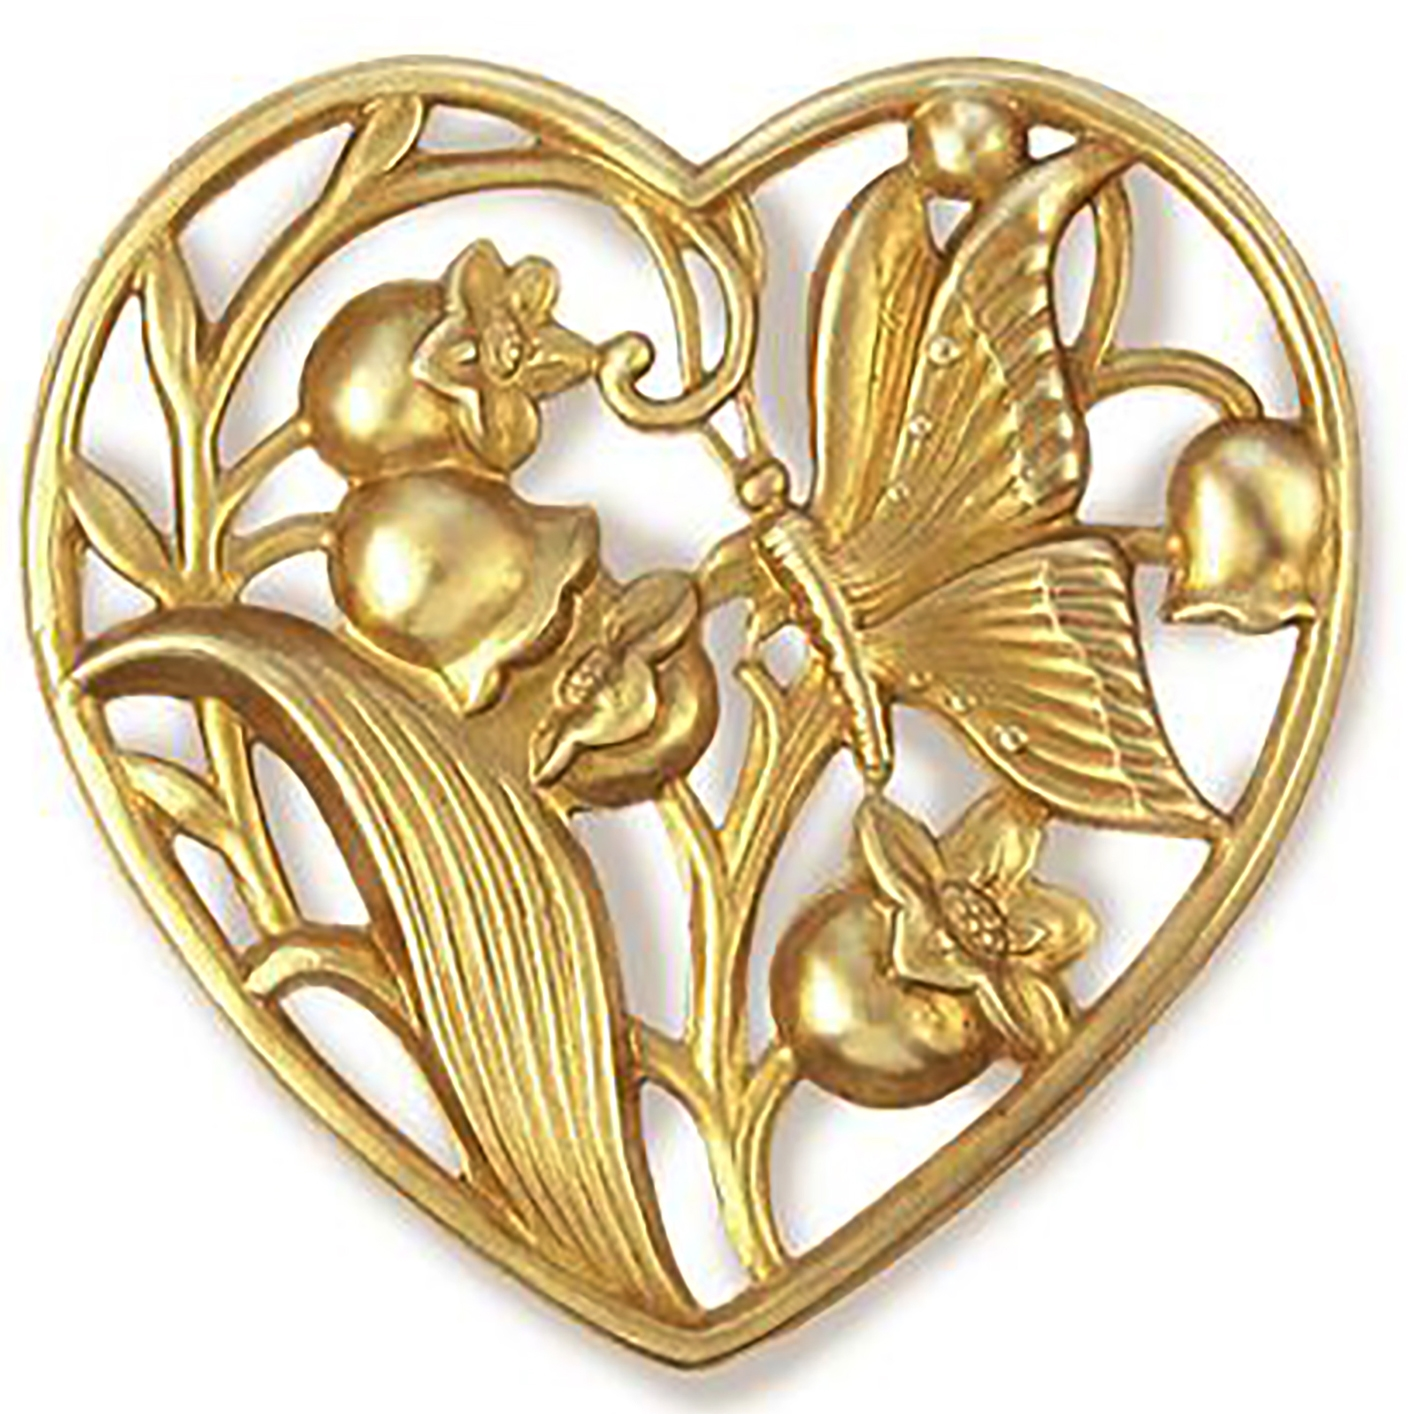 brass hearts, lily of the valley heart, heart stampings, filigree hearts, 09264, jewelry making, raw brass, jewelry making supplies, vintage jewelry supplies, US made, nickel free jewelry supplies